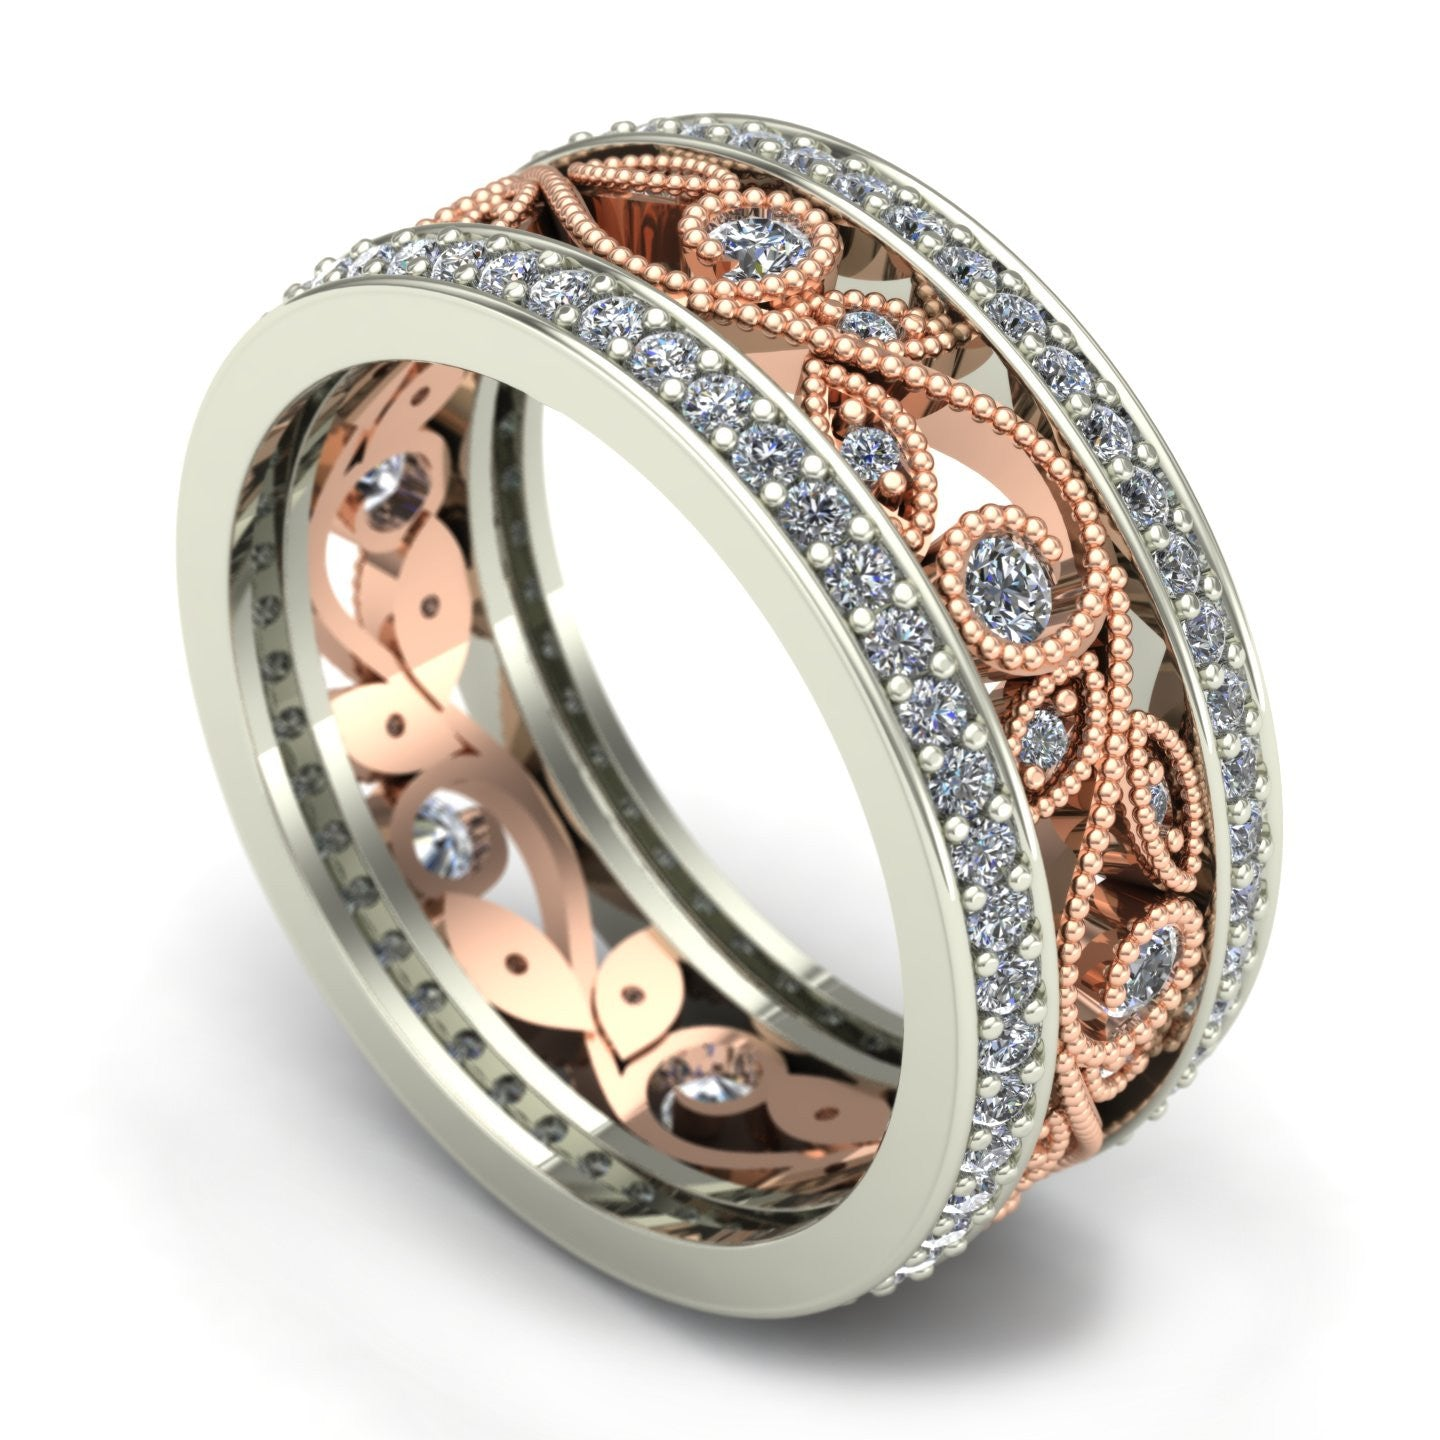 Diamond floral wedding band in 14k rose and white gold